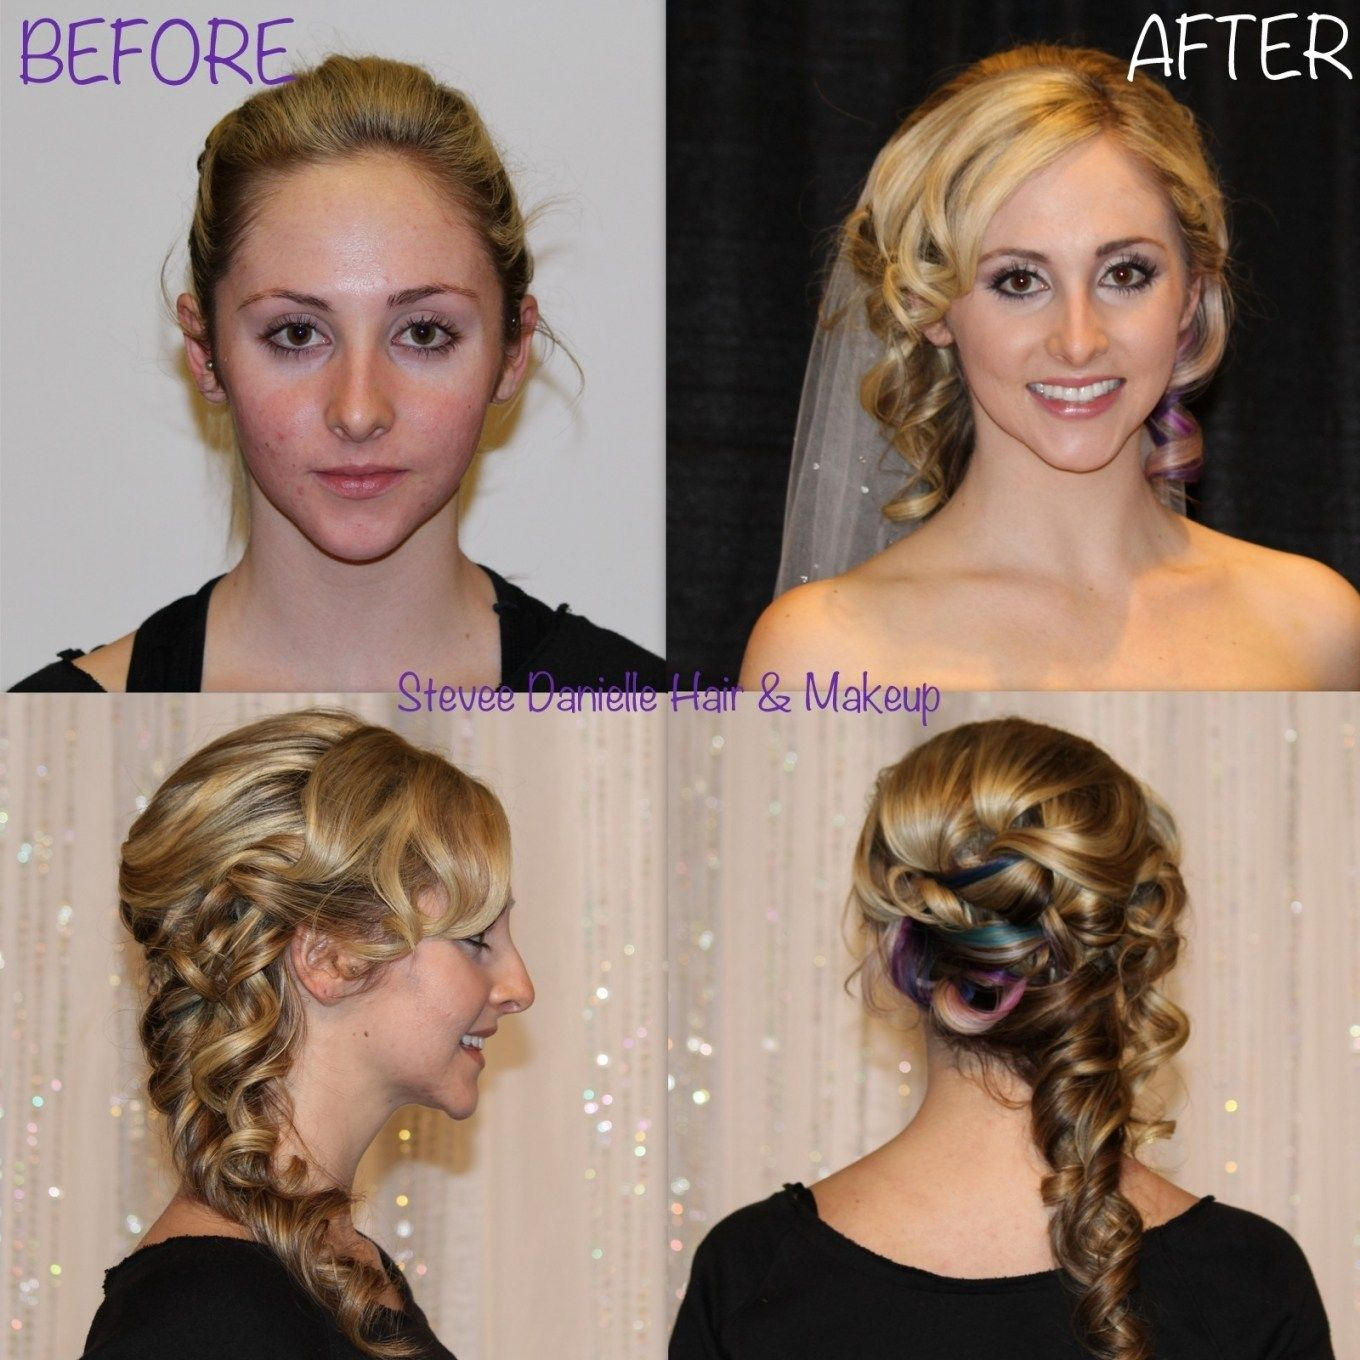 wedding hair and makeup in las vegas | hairstyles ideas for me